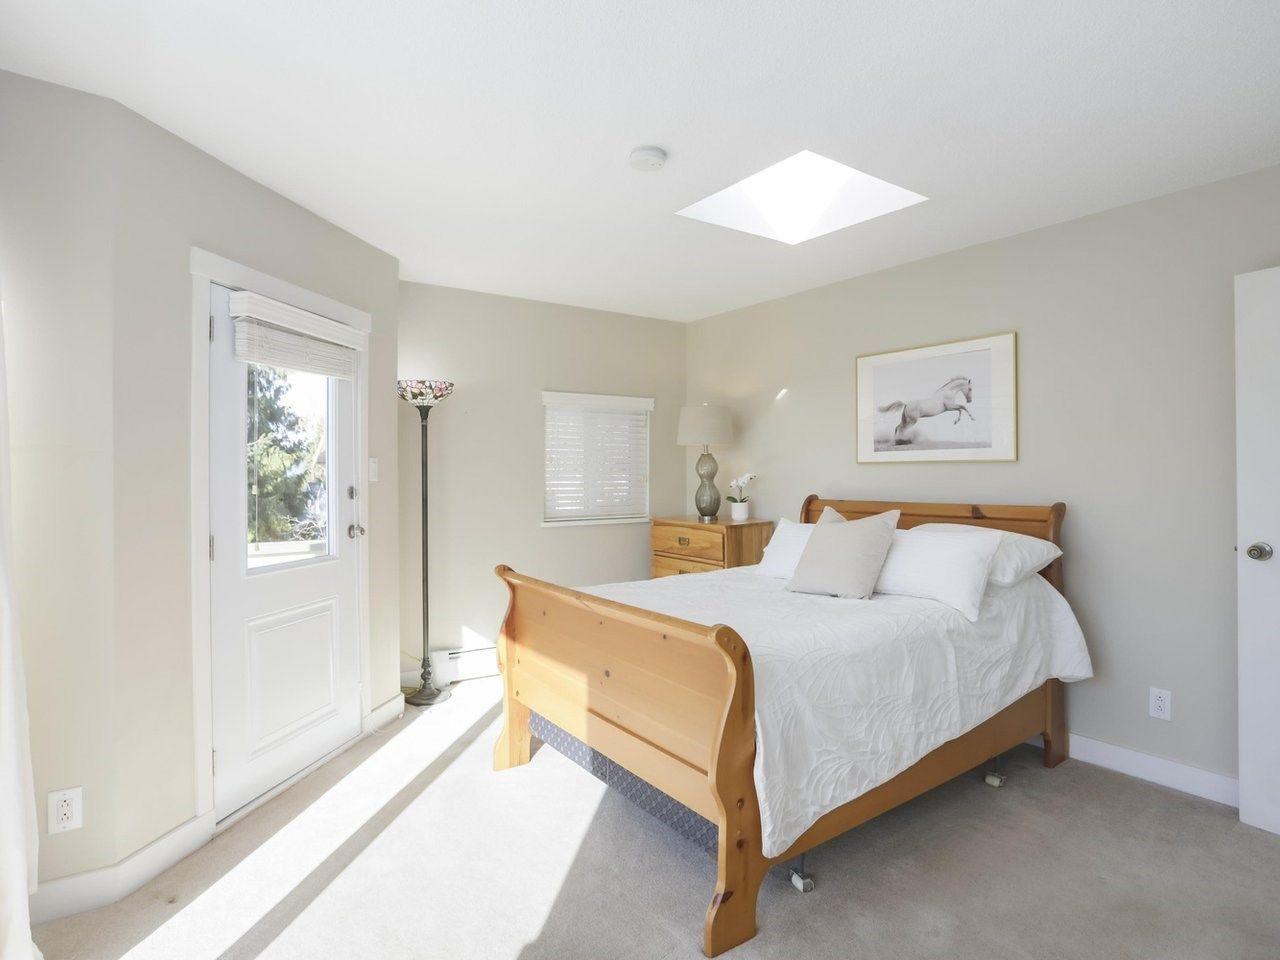 Photo 9: Photos: 325 W KINGS Road in North Vancouver: Upper Lonsdale House for sale : MLS®# R2443642